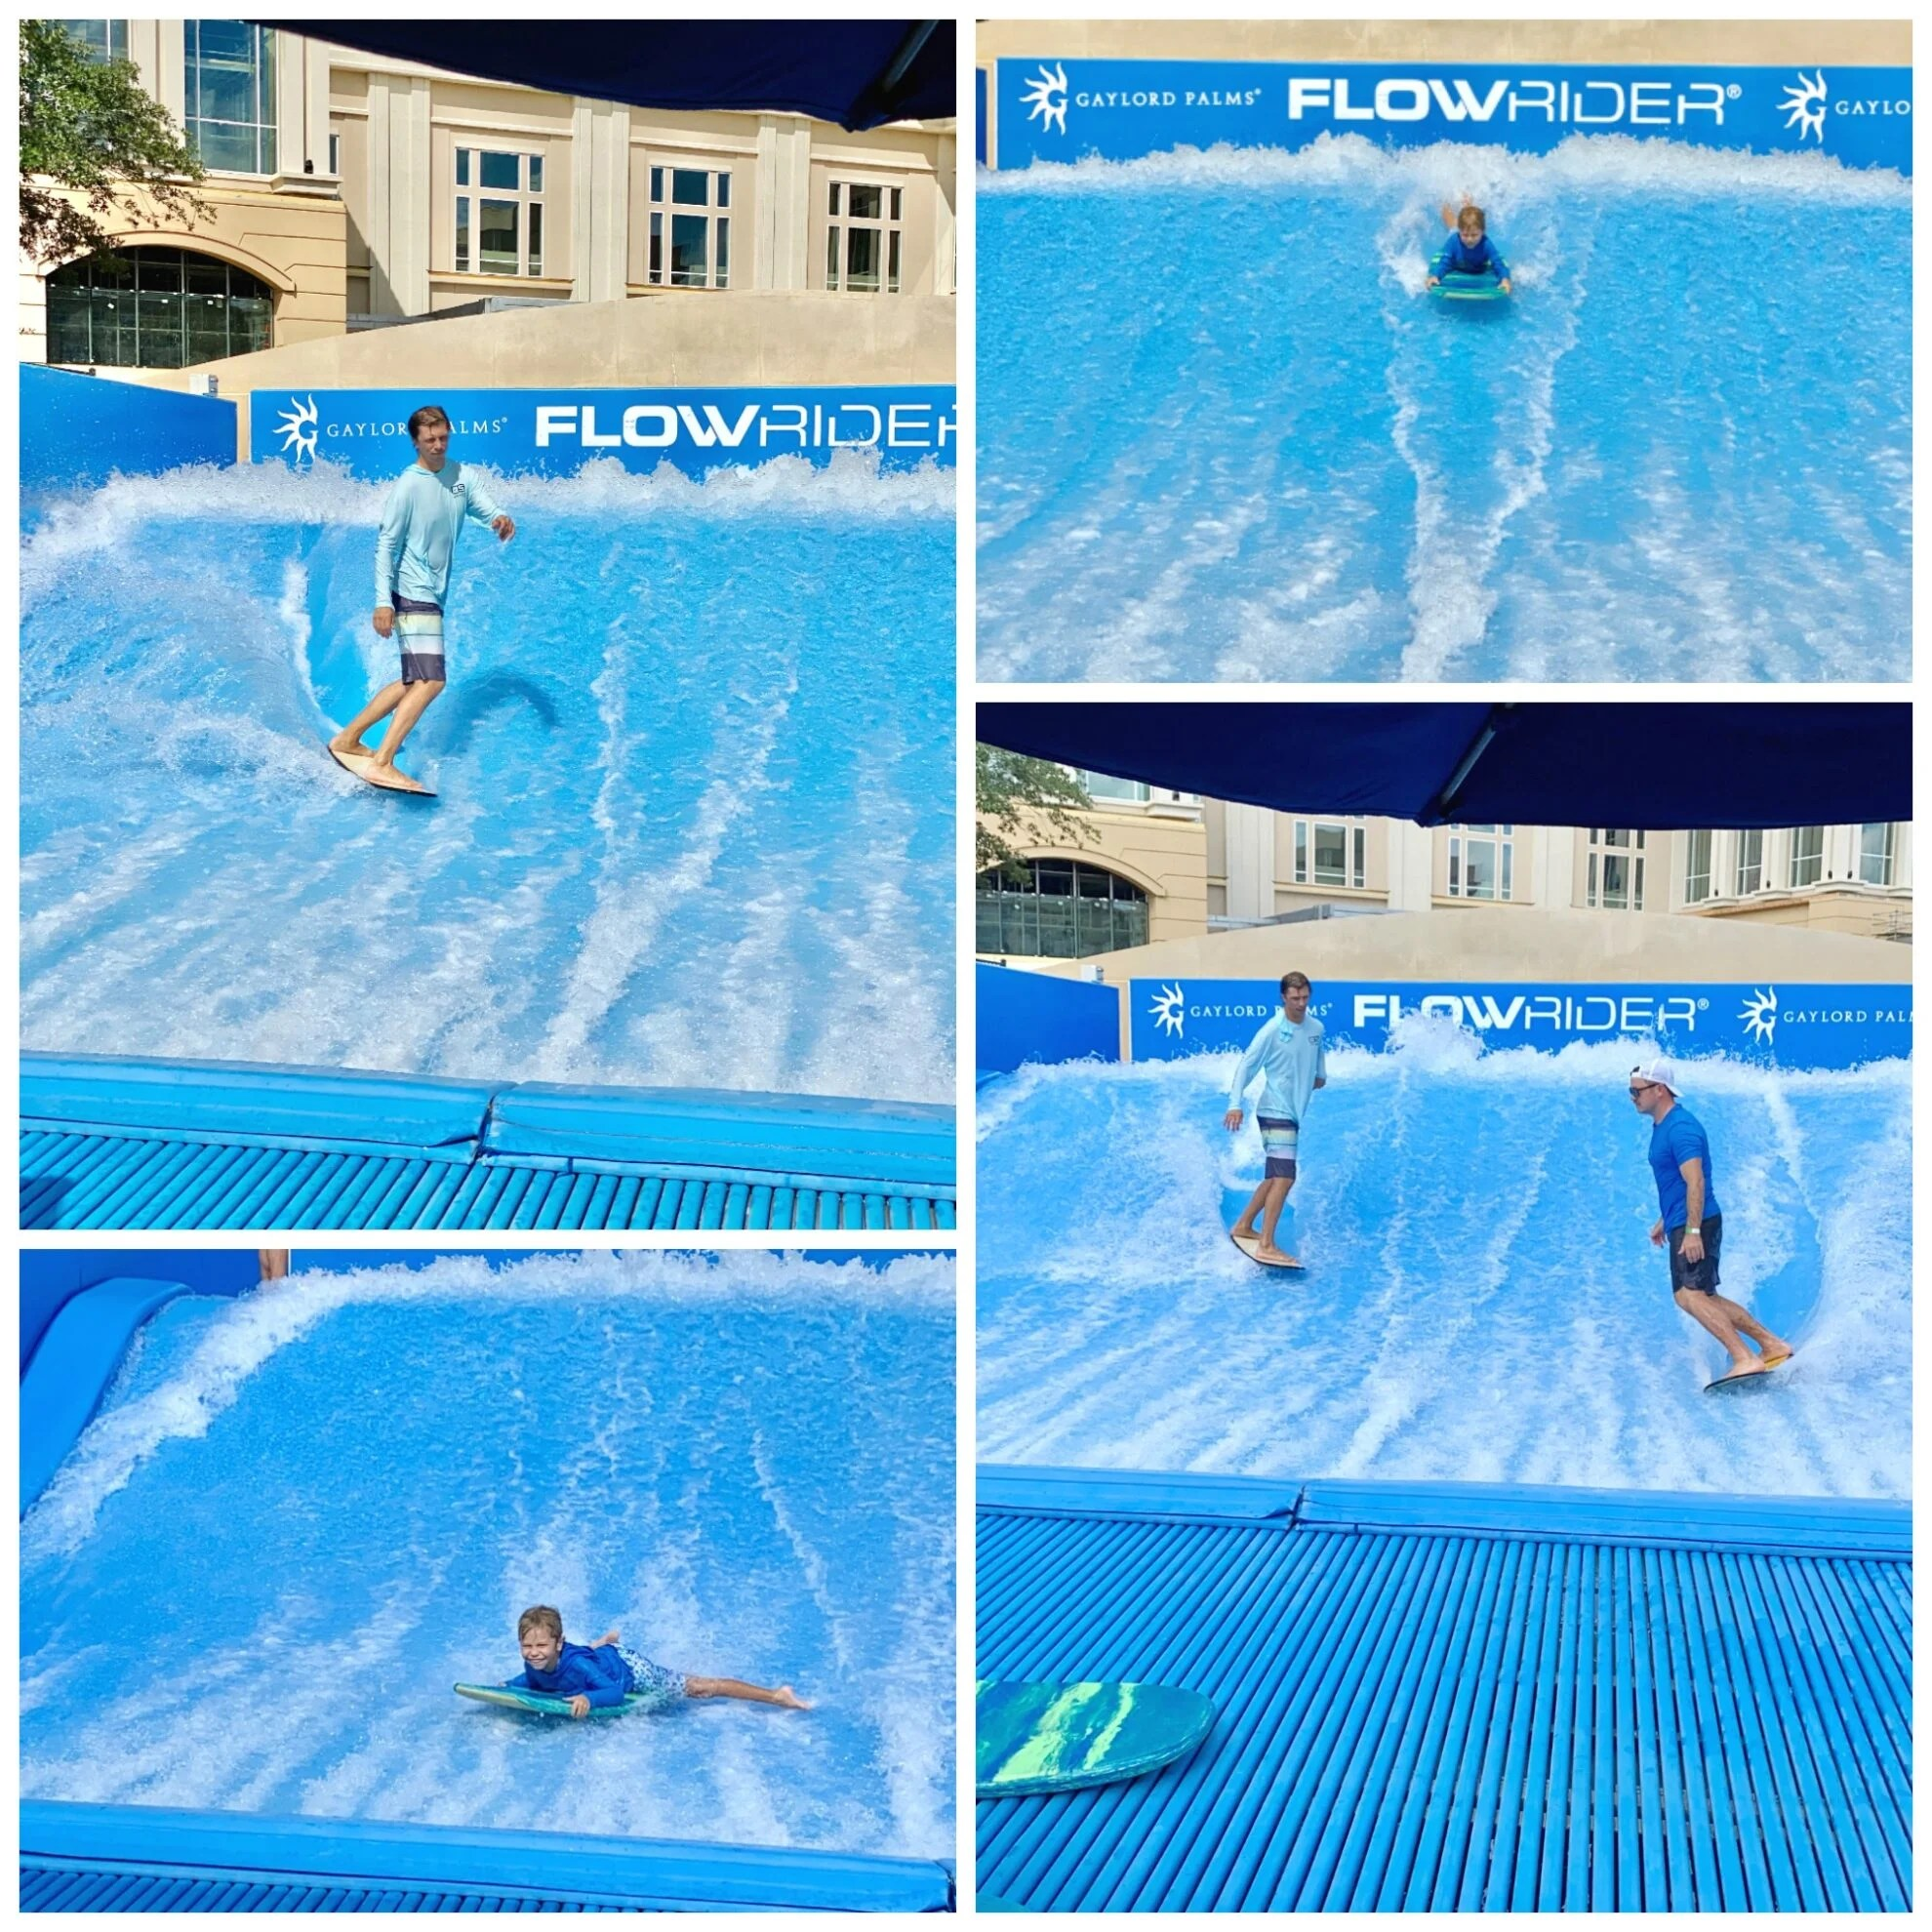 Four photo split of two men surfing on FlowRider and a little boy body boarding.